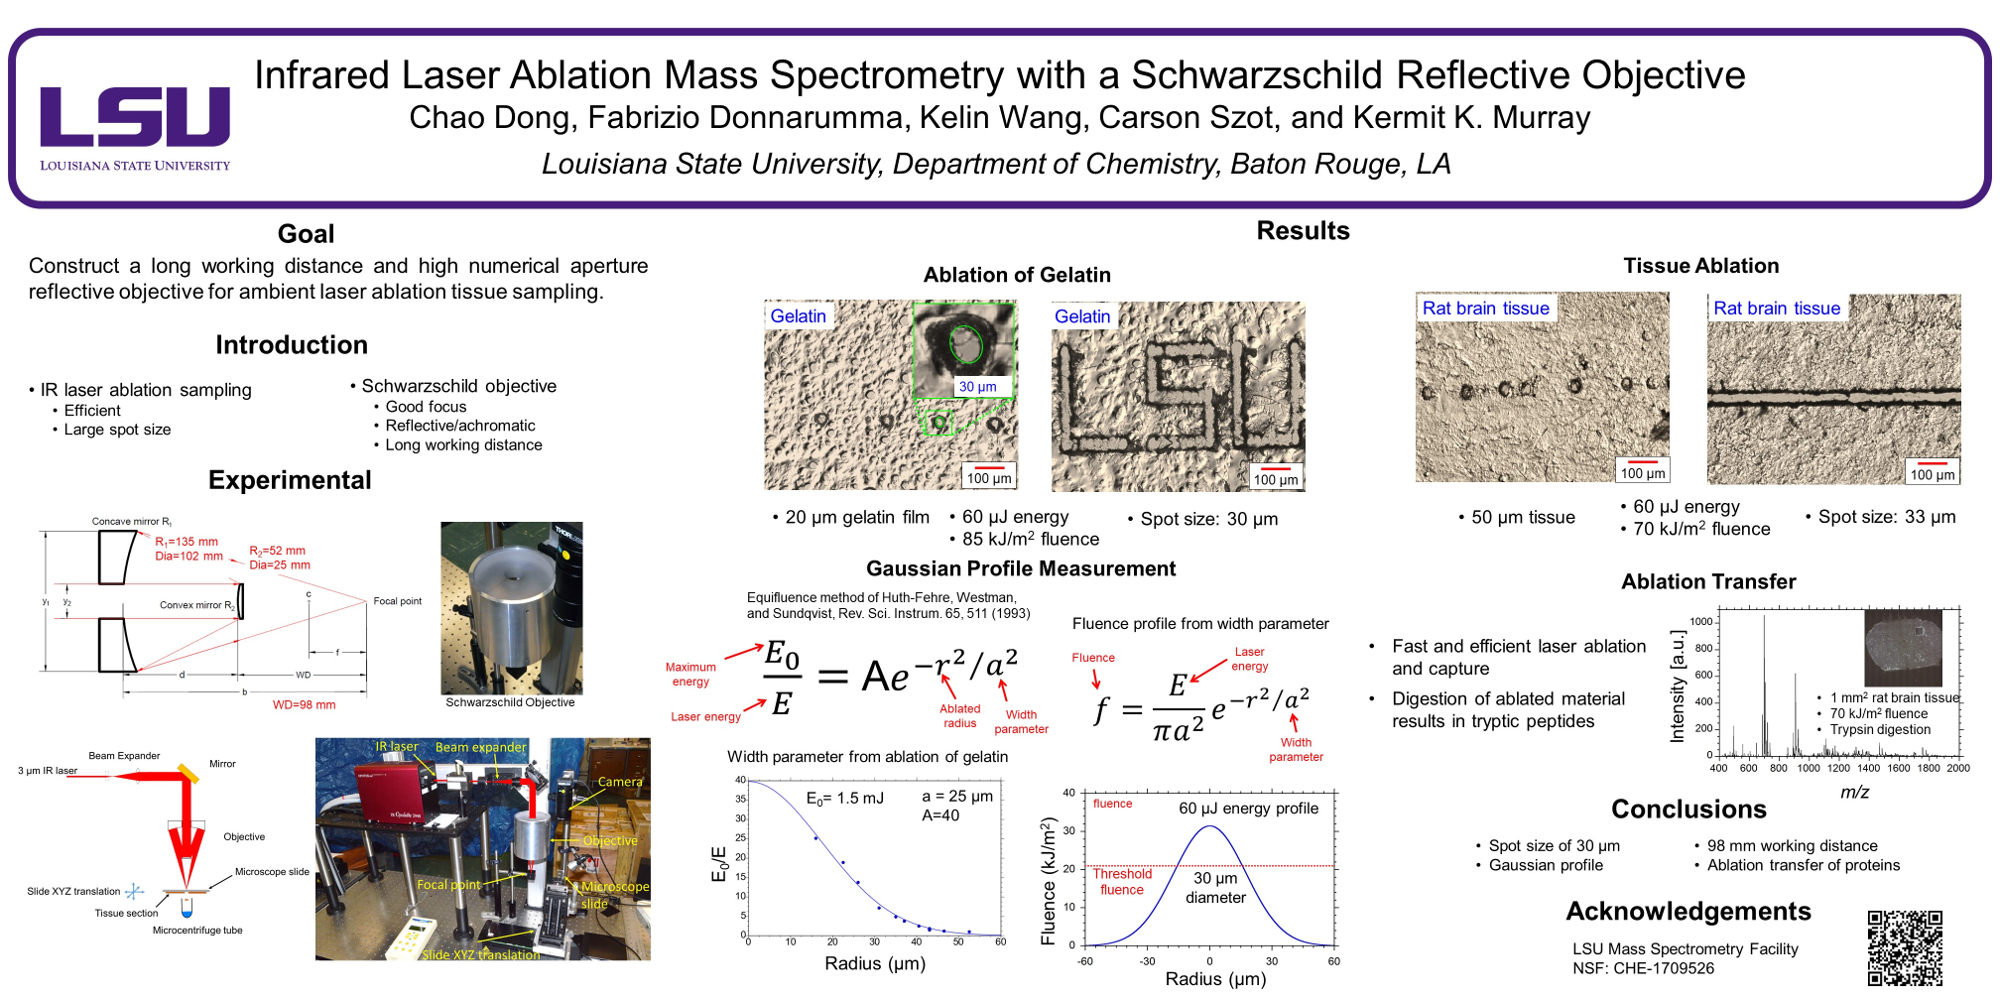 MP 328 Infrared Laser Ablation Mass Spectrometry With A Schwarzschild Reflective Objective